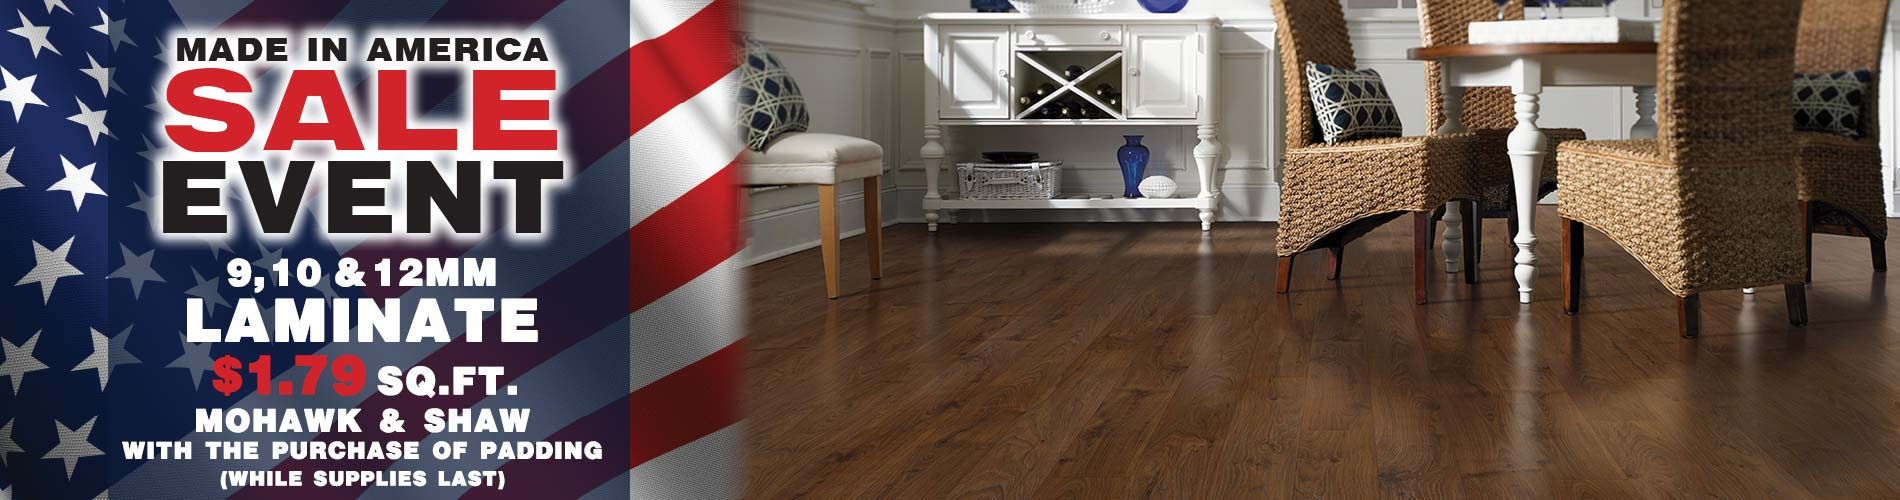 Made In America Sale Event - 9, 10 & 12mm Laminate - $1.79 sq.ft. - Mohawk & Shaw - While Supplies Last